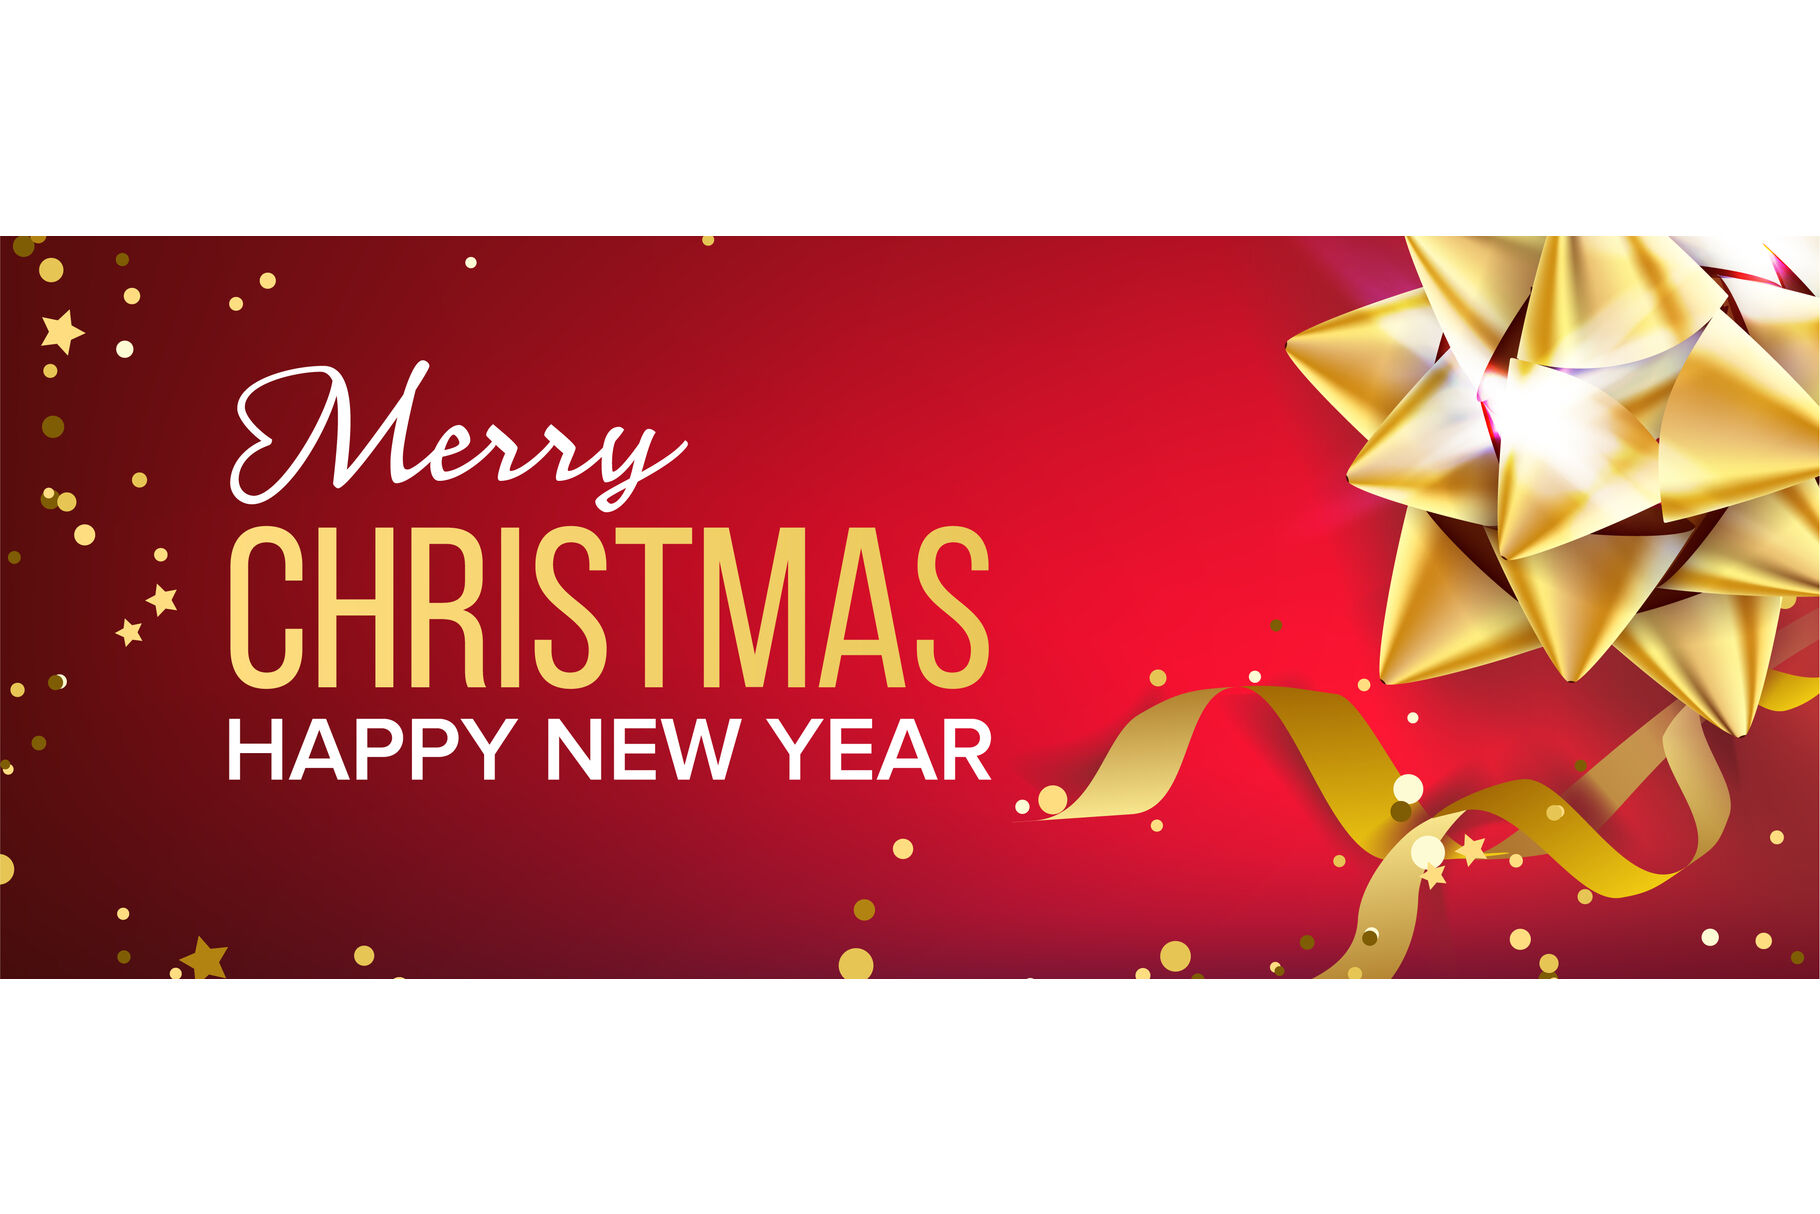 merry christmas and happy new year banner vector gold bow red background illustration by pikepicture thehungryjpeg com the hungry jpeg